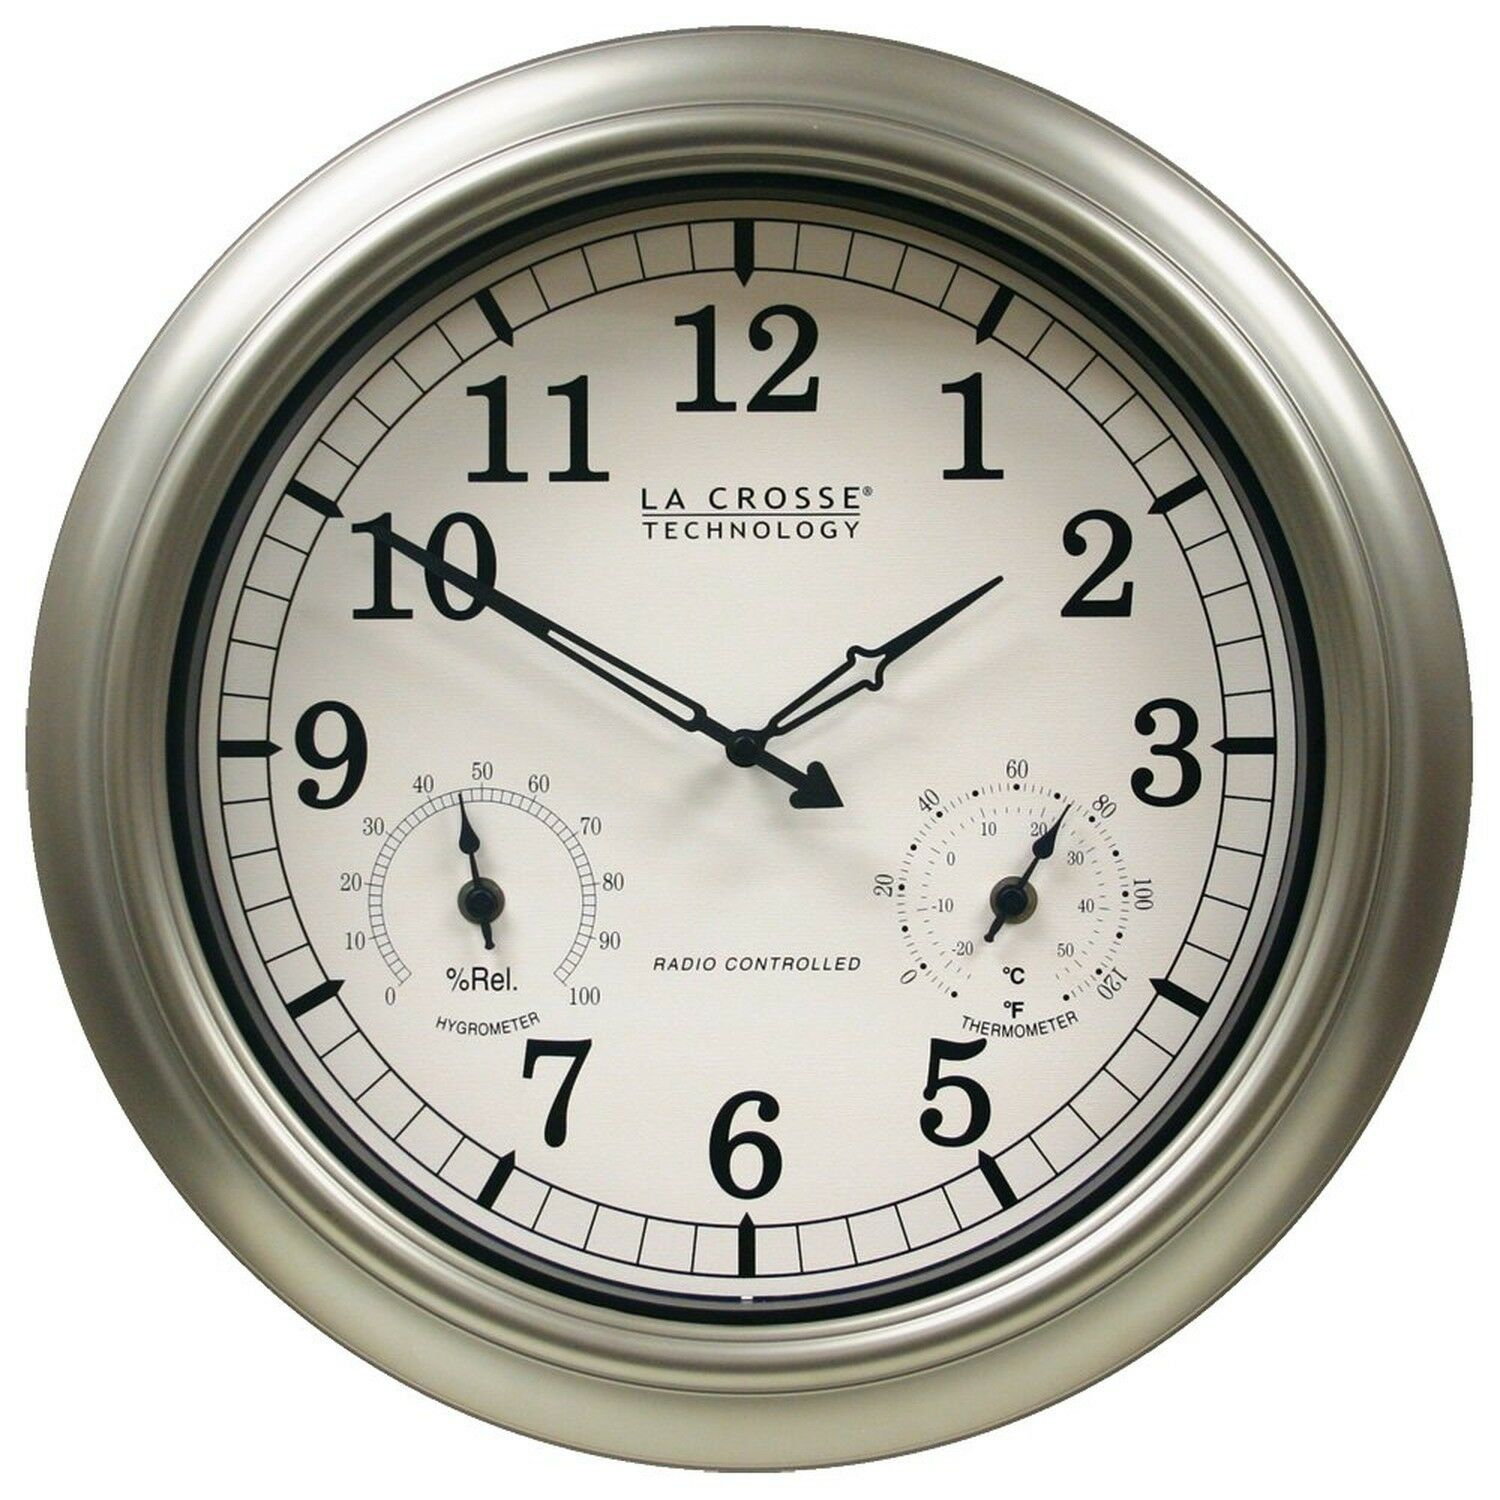 La crosse technology wt 3181pl int 18 inch atomic outdoor clock picture 1 of 5 amipublicfo Gallery